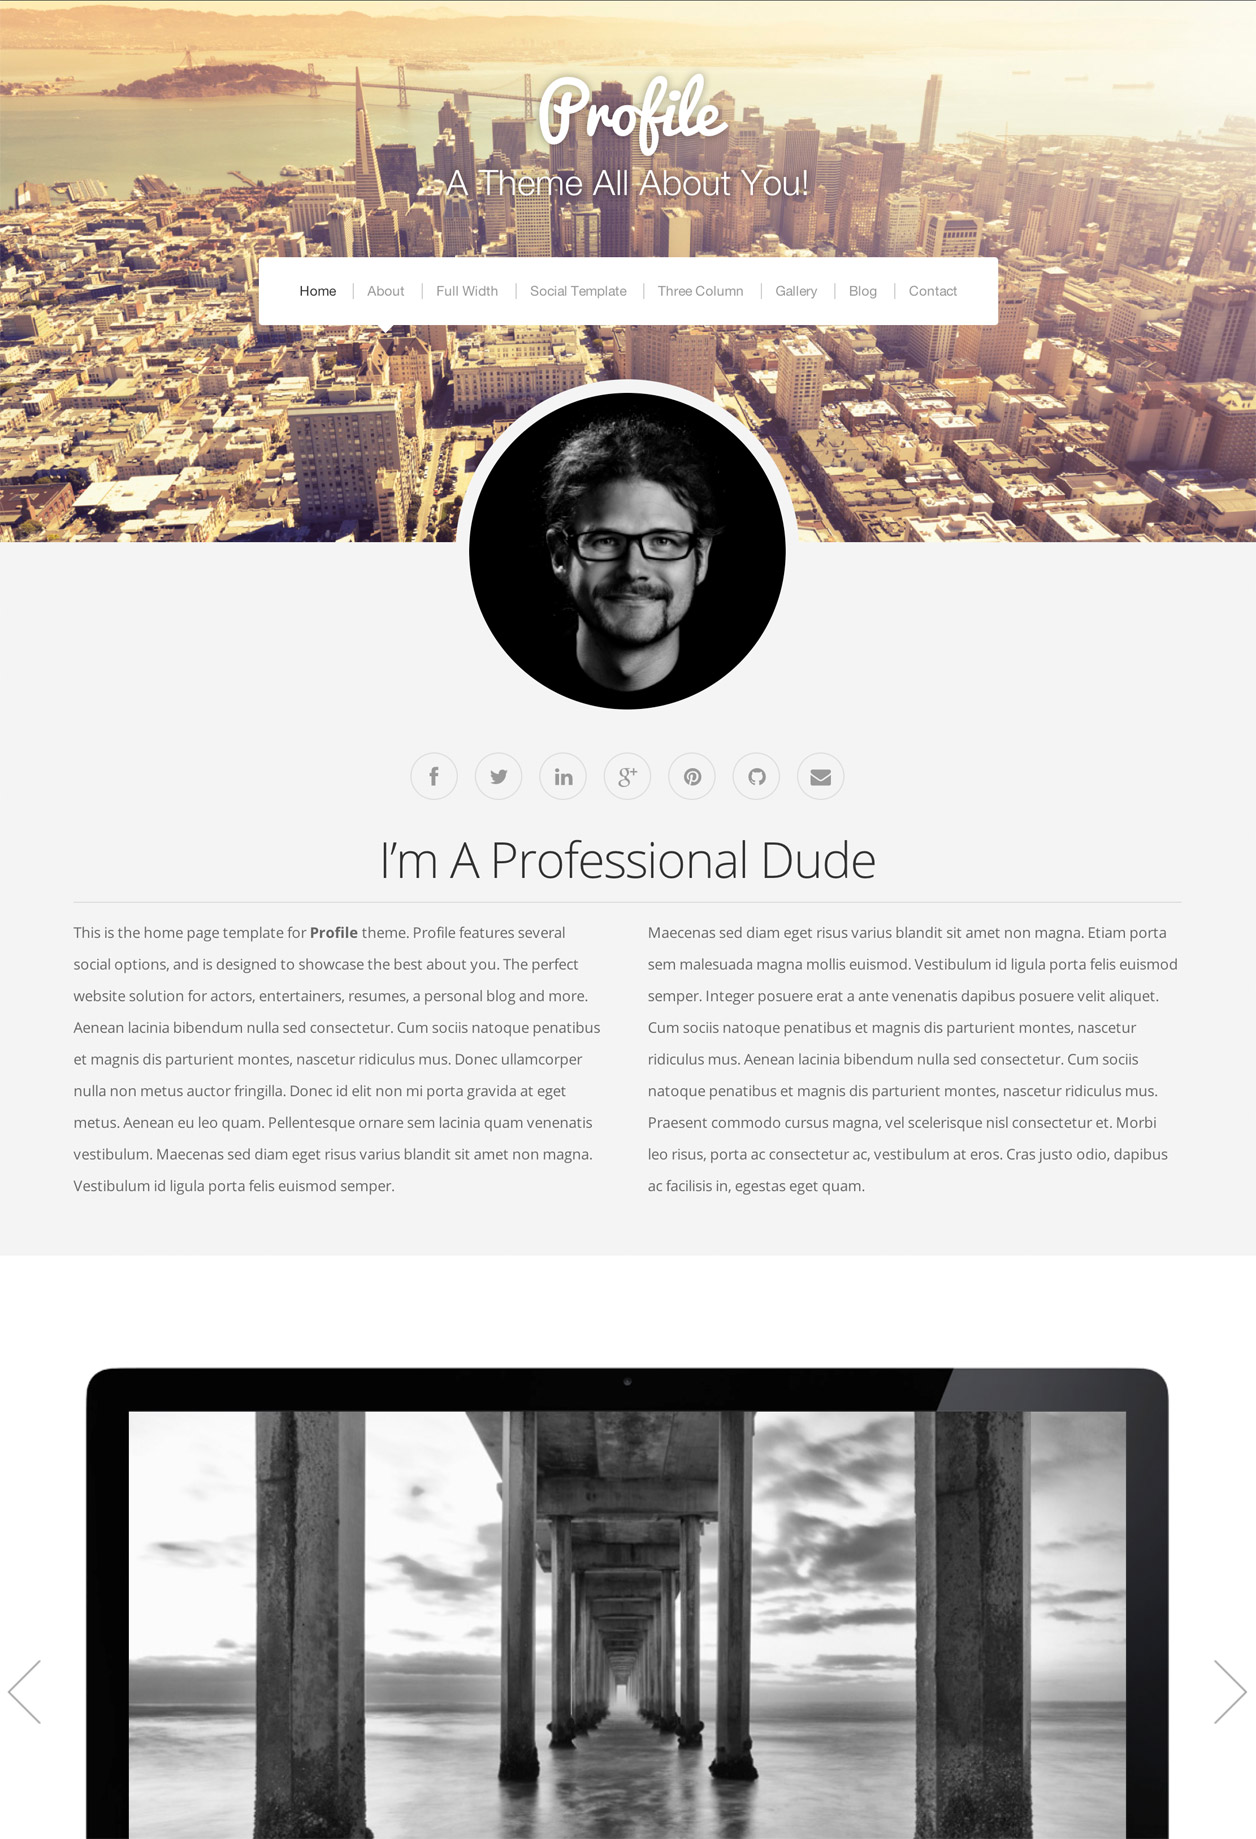 Profile's Home Page template